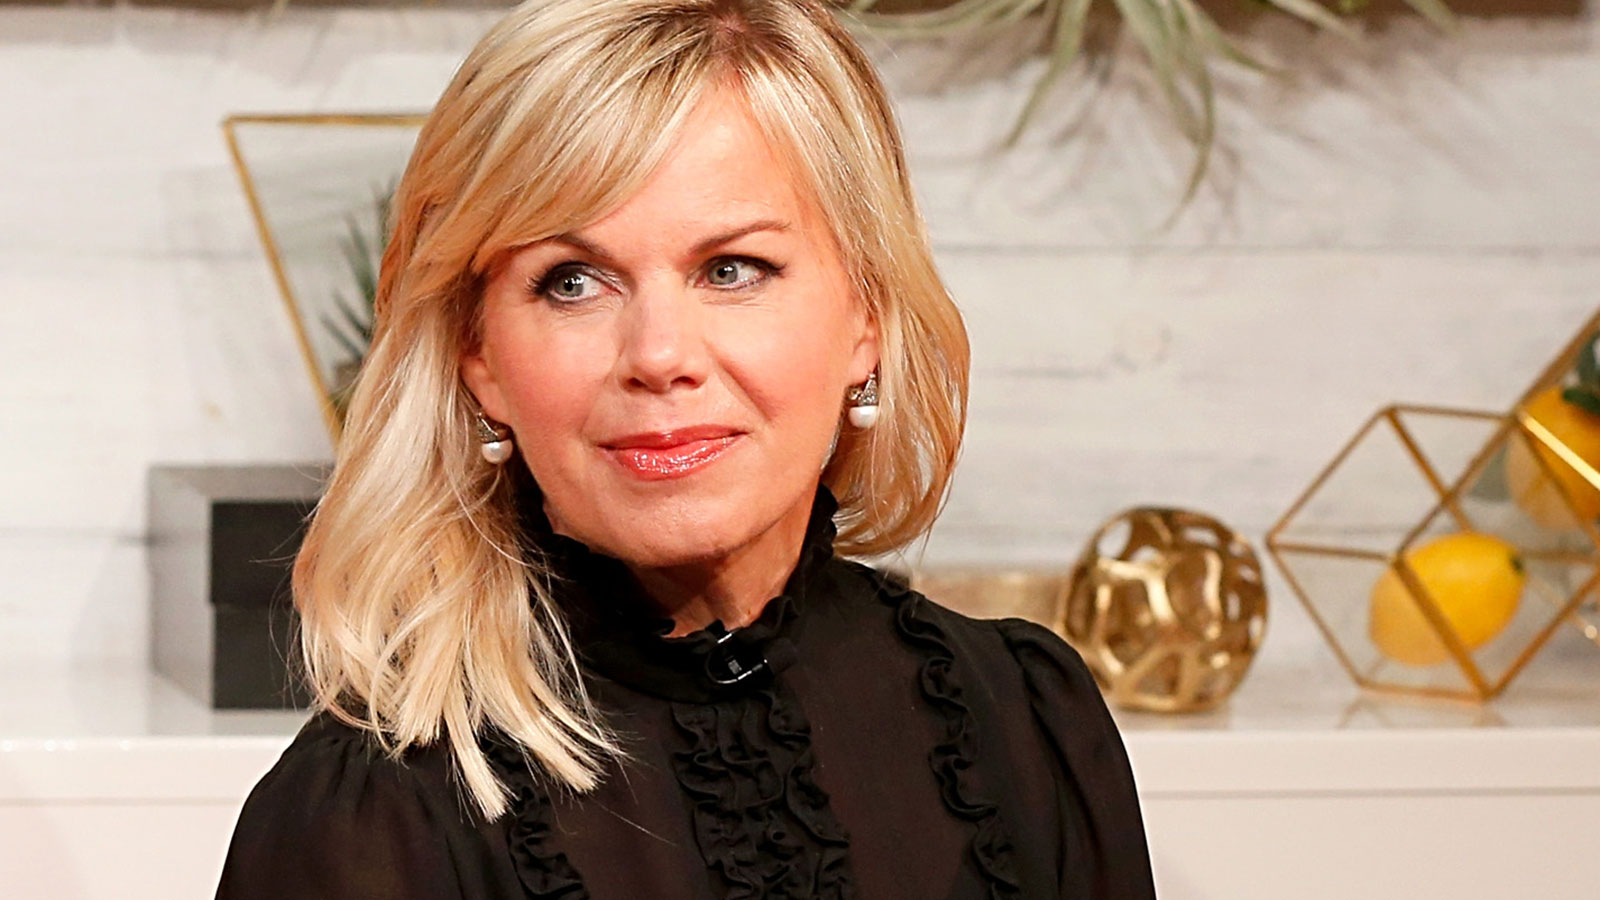 Gretchen Carlson fights back against nondisclosure agreements like the one she signed with Fox News